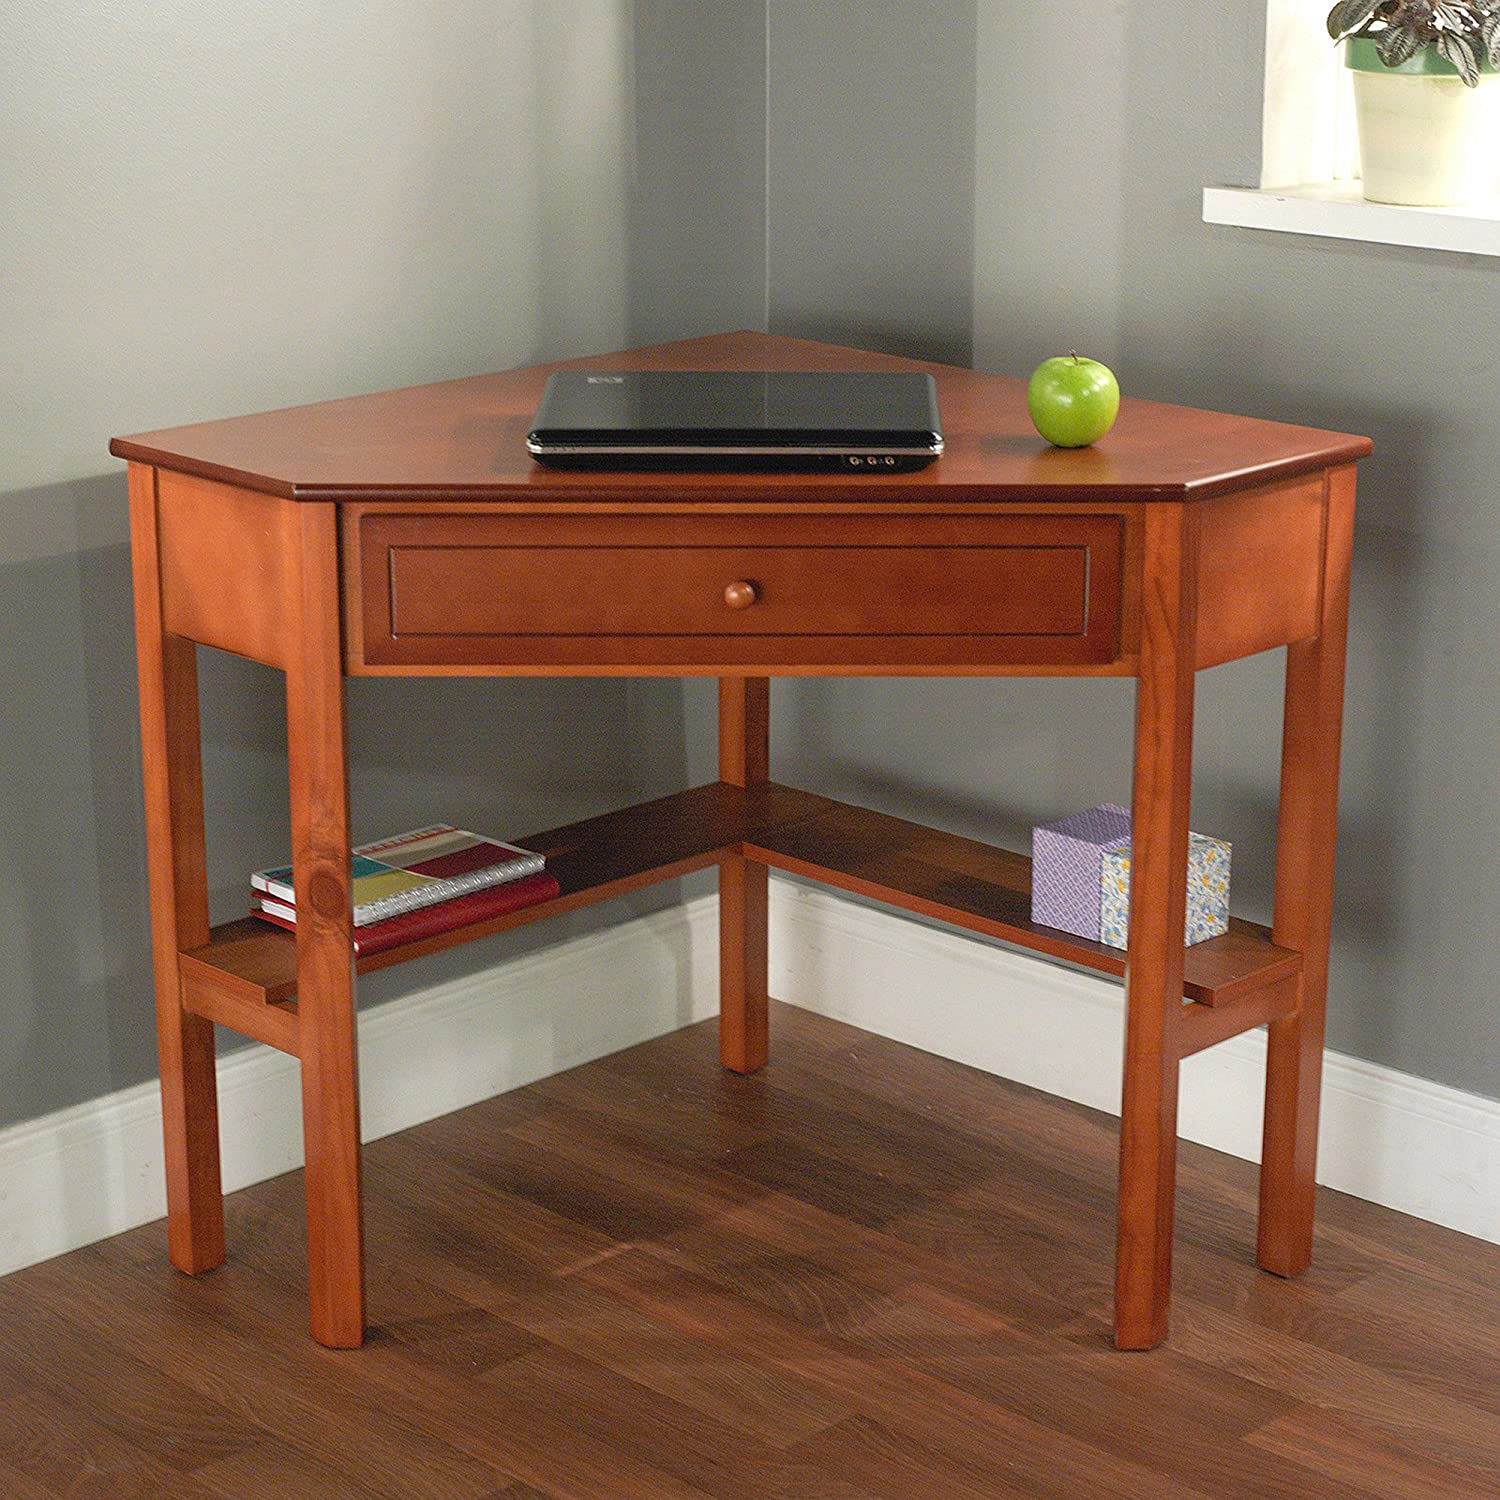 Space-Saving Wooden Corner Writing Desk, Suitable for Home or Office with  small spaces, Classic and Antique Design, Best for Computer/Laptop use, ...